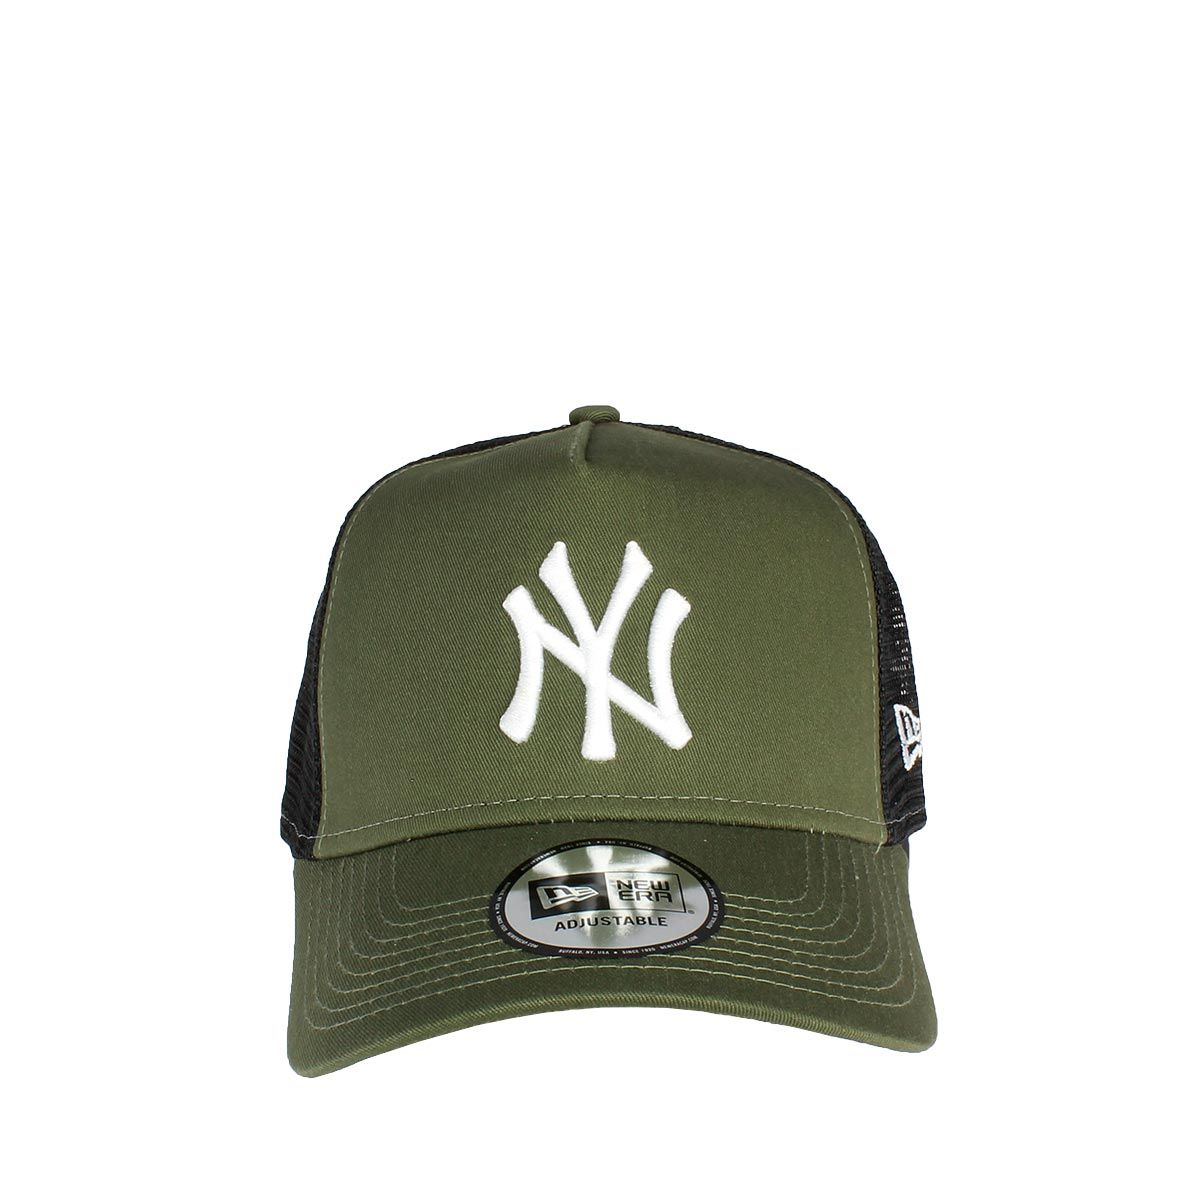 72fc2d4f369 New Era NY Yankees Essential A Frame Trucker χακί.  sneakerstown  newera   neweracap  trucker  cap  nyyankees  yankees  men  mens  mensfashion  women   womens ...